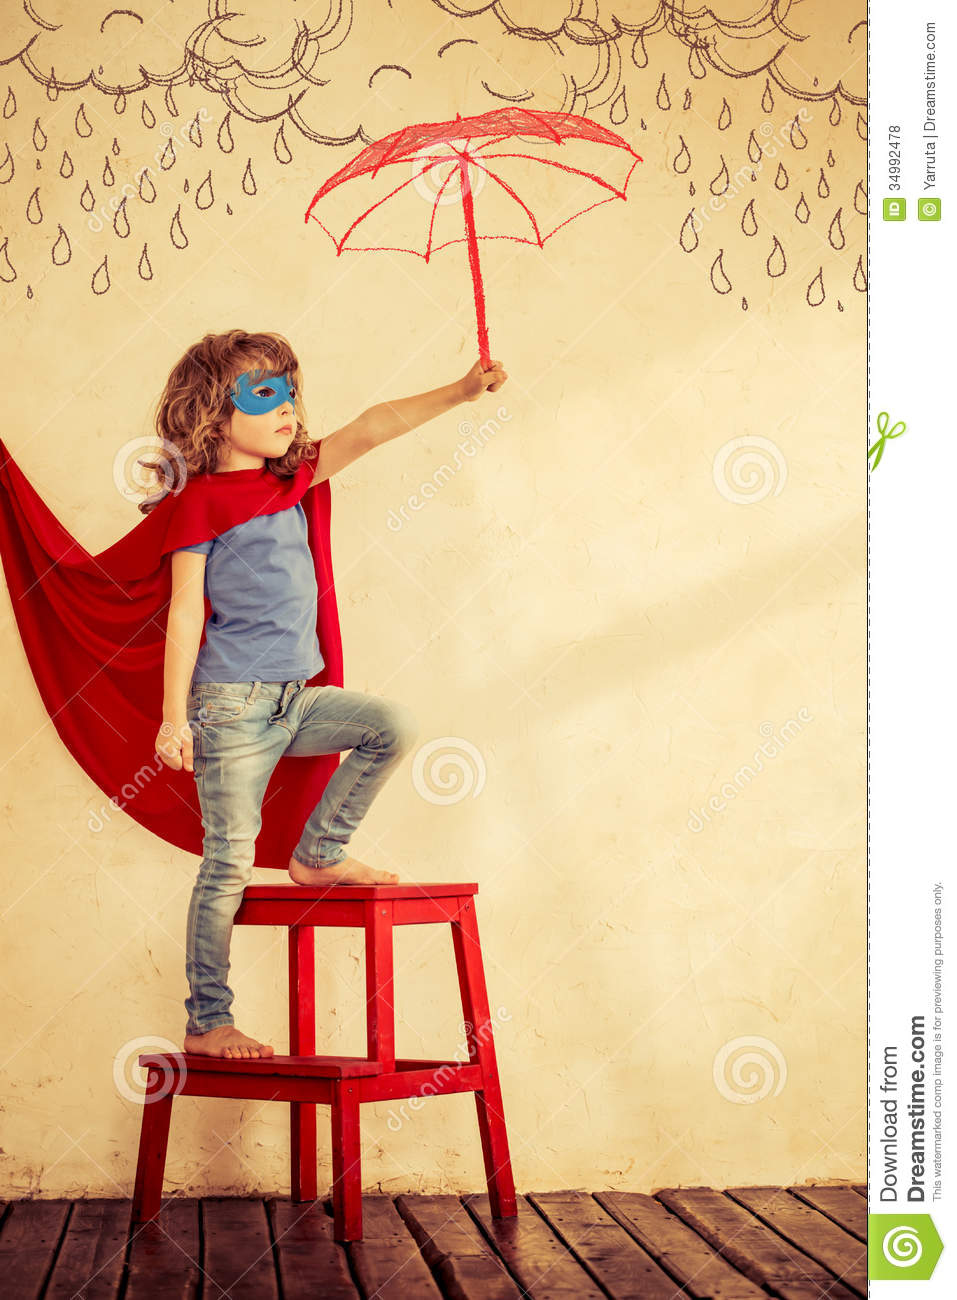 https://thumbs.dreamstime.com/z/superhero-kid-full-length-portrait-against-grunge-wall-background-34992478.jpg